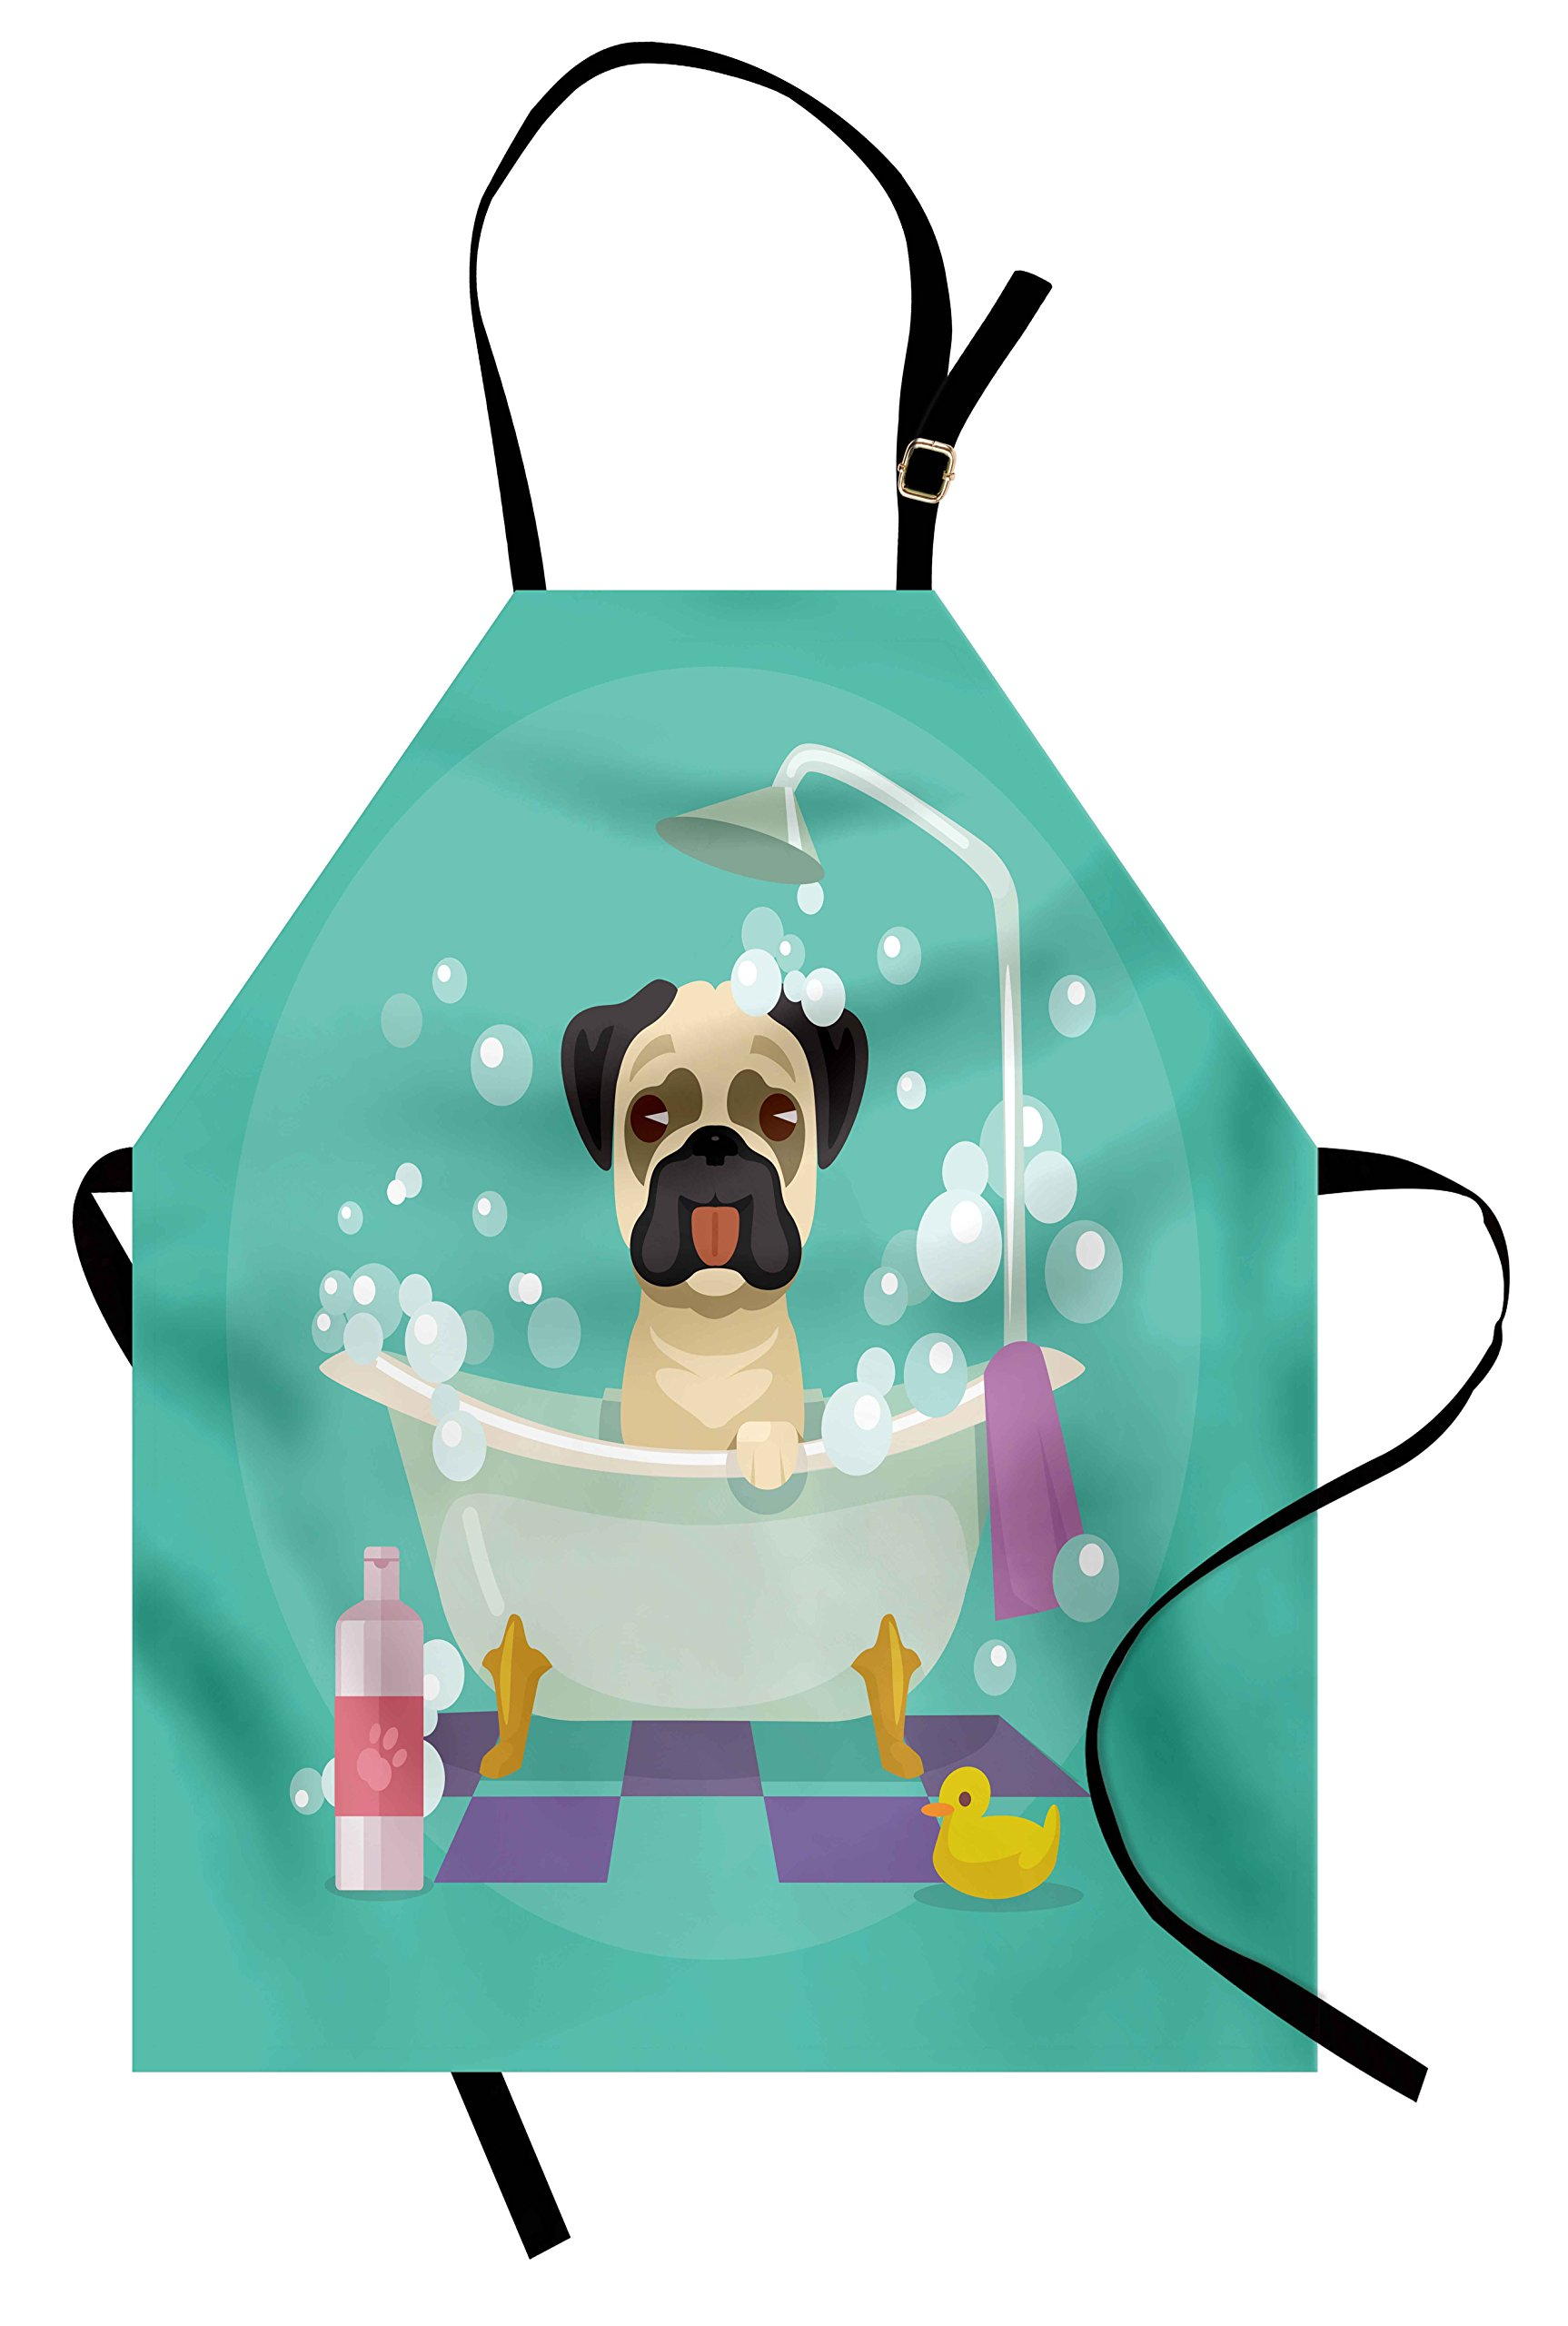 Lunarable Nursery Apron, Pug Dog in Bathtub Grooming Salon Service Shampoo Rubber Duck Pets in Cartoon Style Image, Unisex Kitchen Bib Apron with Adjustable Neck for Cooking Baking Gardening, Teal